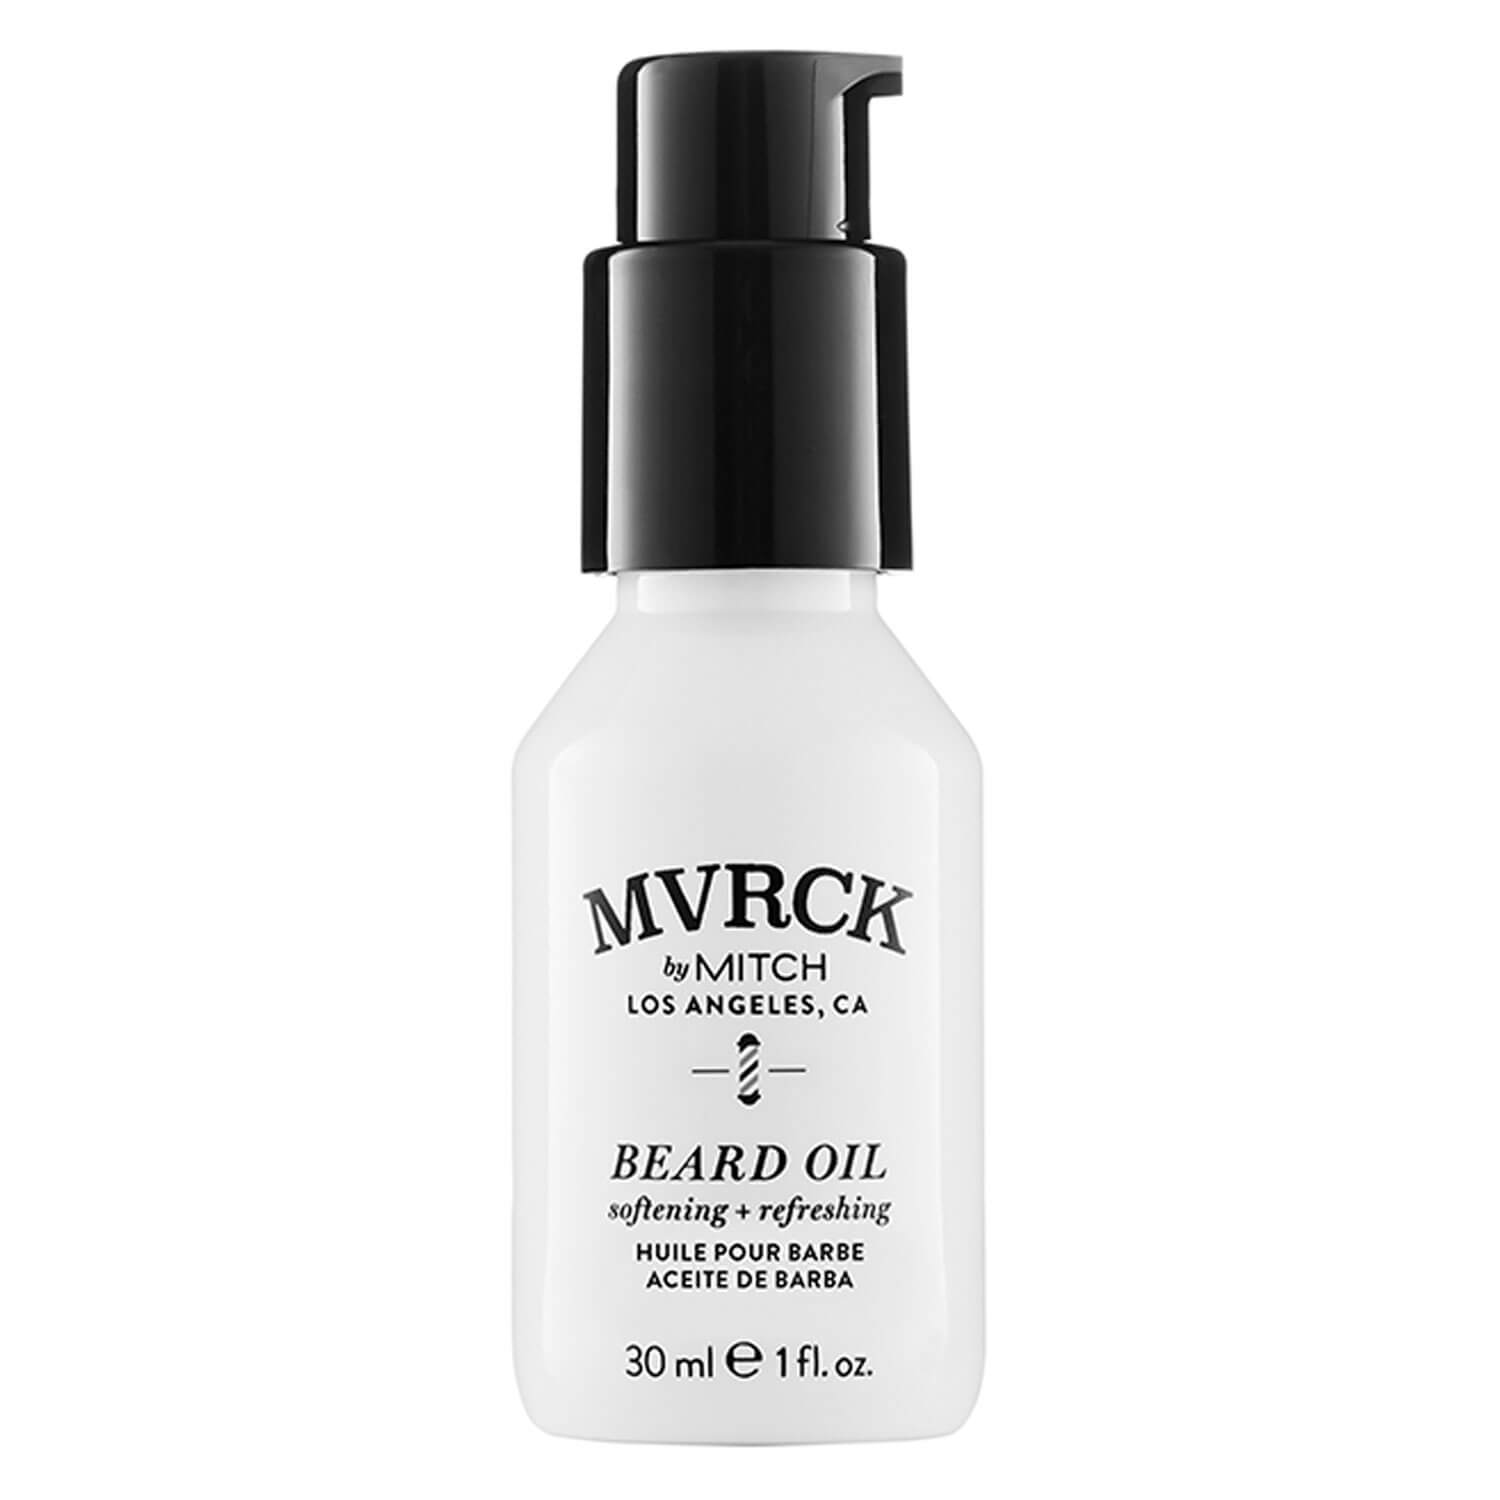 MVRCK - Beard Oil